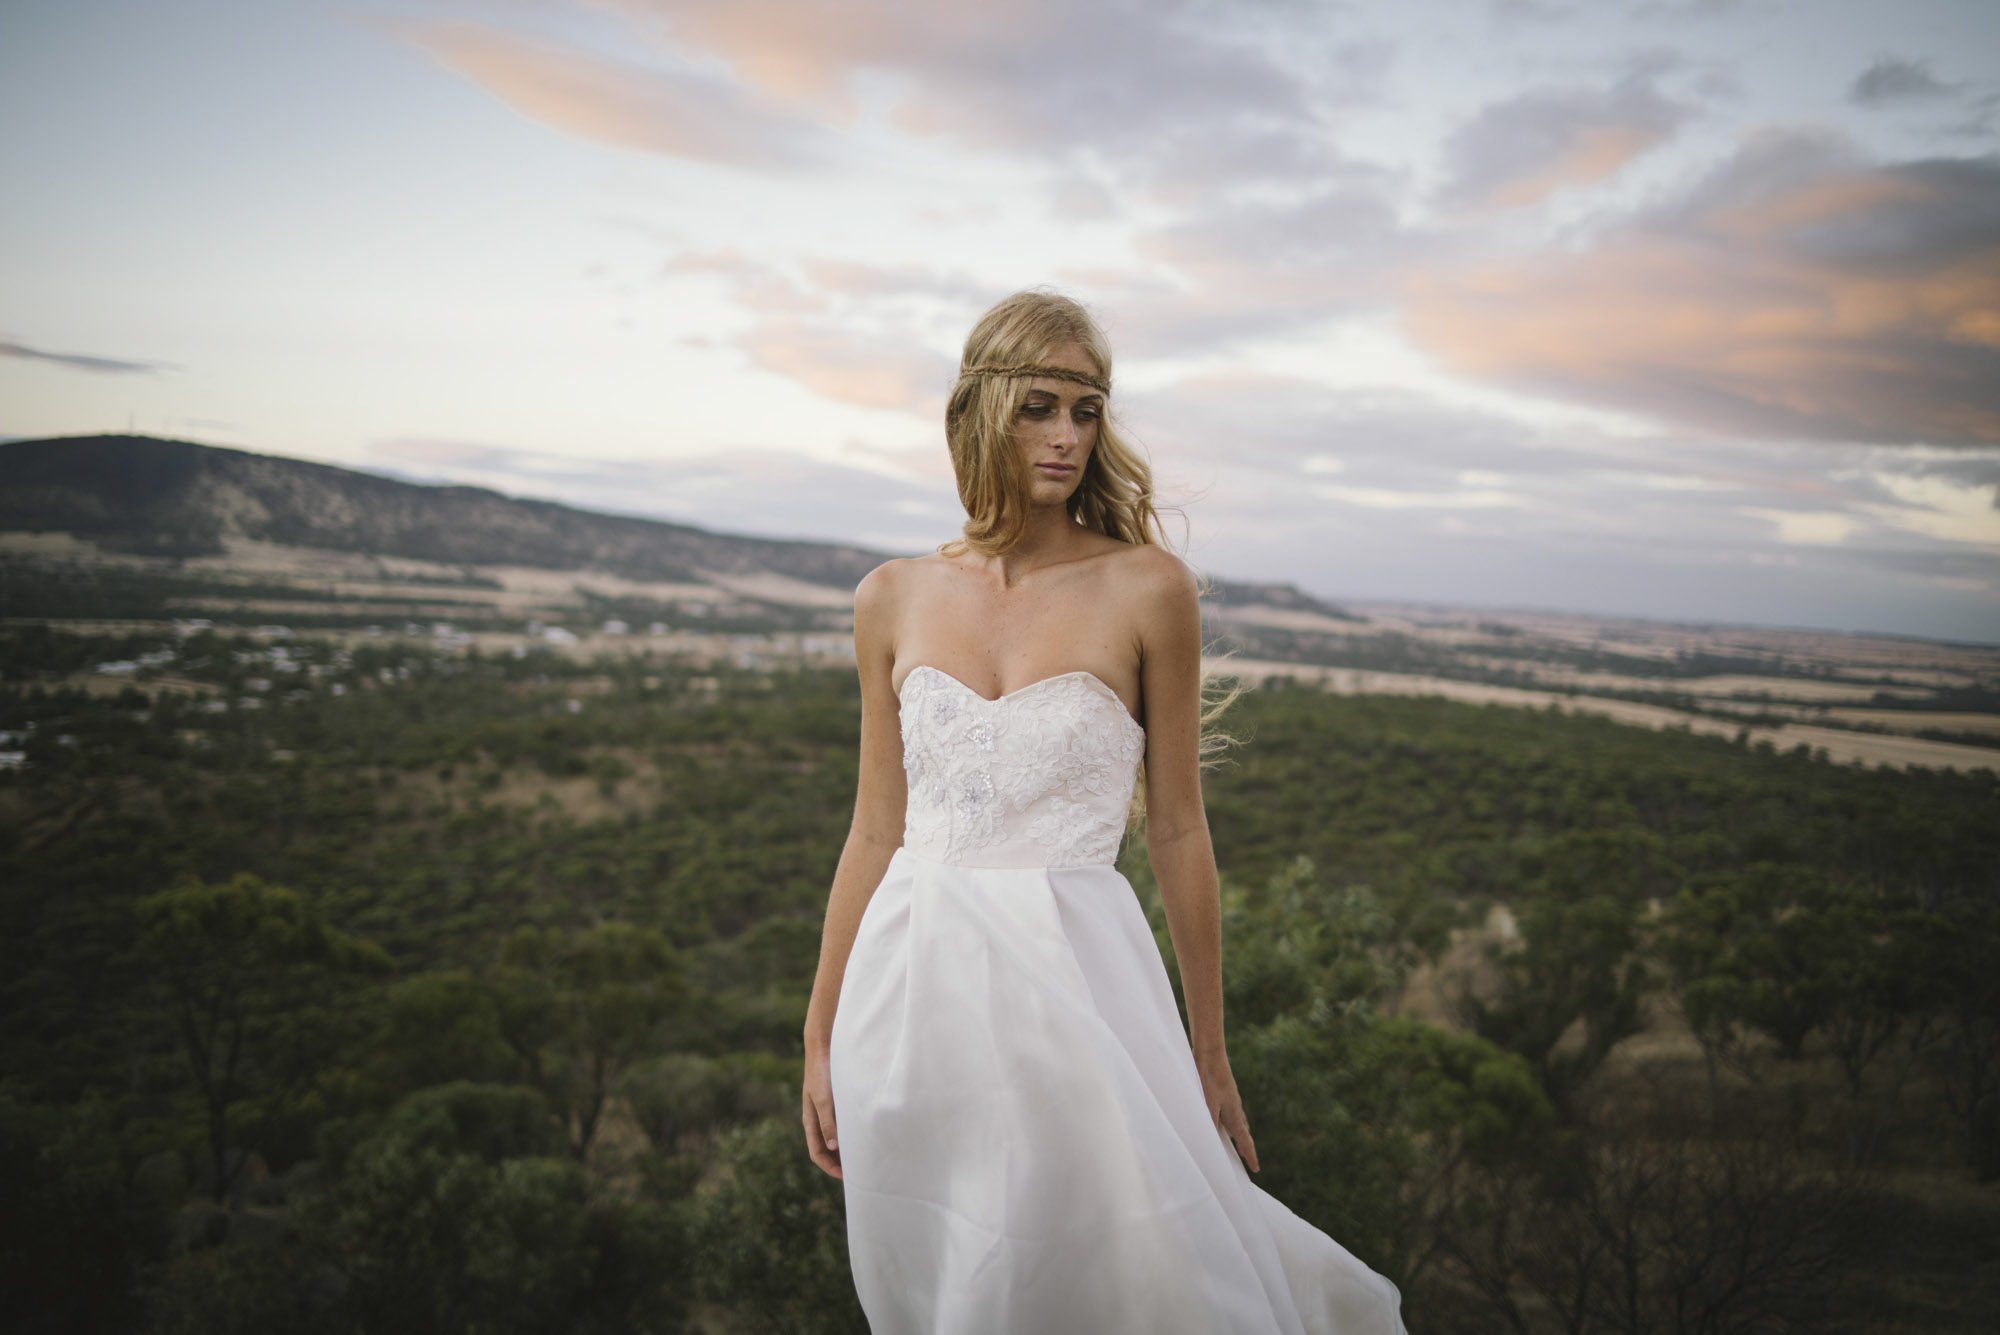 Angie-Roe-Photography-Wedding-Perth-Northam-Wheatbelt-Country-Rural (12).jpg